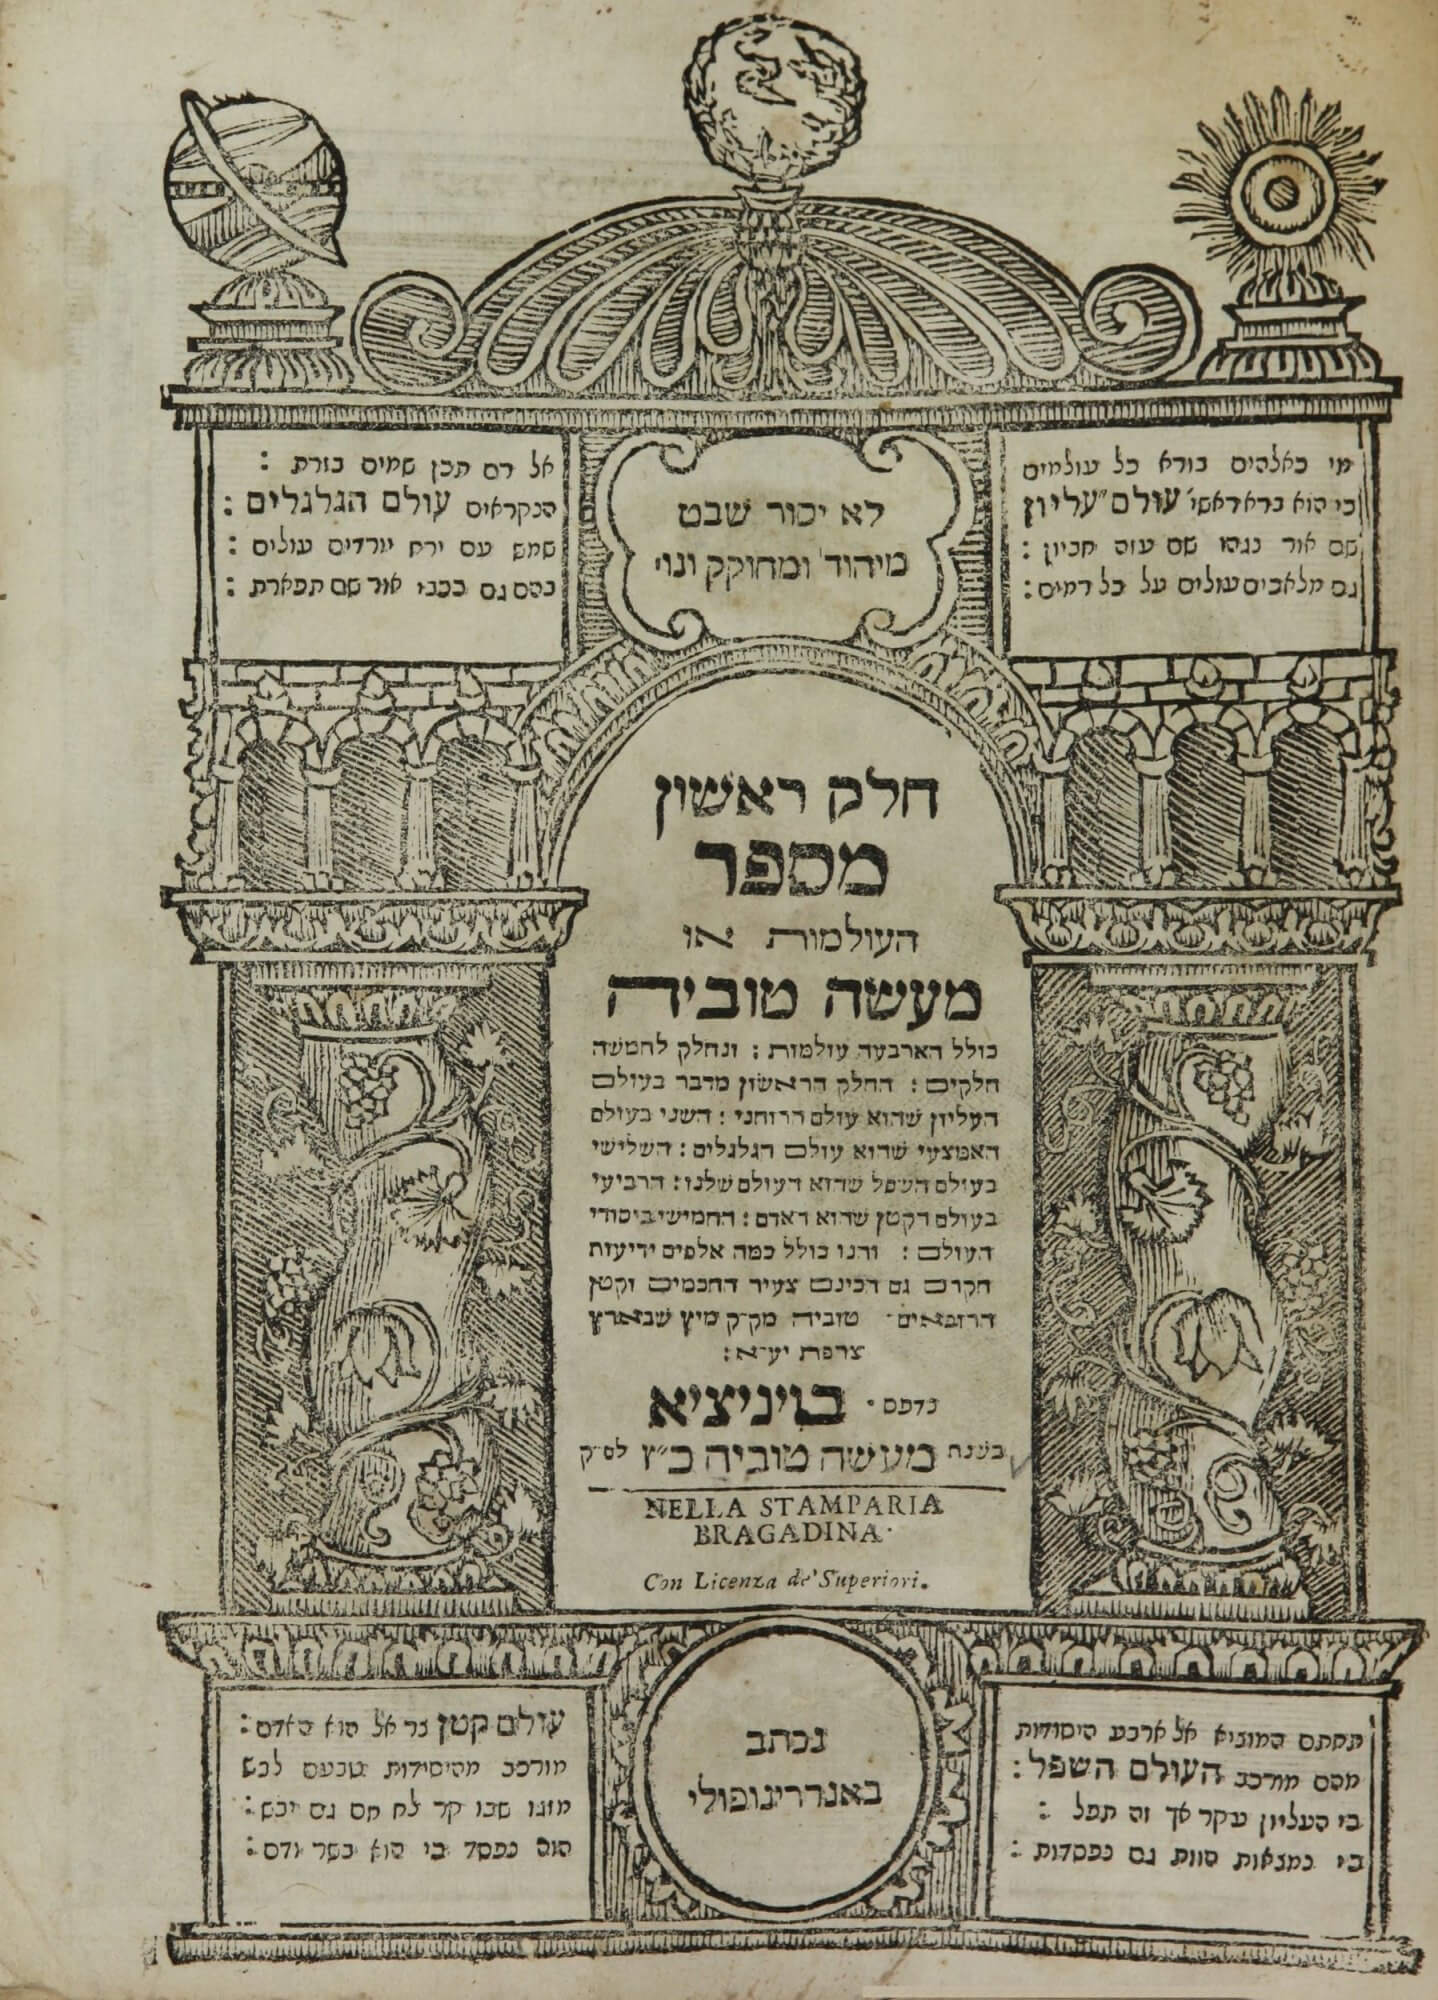 """This title page combines both Hebrew and roman type, indicating its origin at a Hebrew print studio in Venice. The main part of the title reads, """"Part one of the book of worlds or Ma'aseh Toviyah containing the four worlds. And it is divided into five parts. The first part describes the world above, that is the spiritual world. The second the world of the middle, that is the world of the planets. The third is the lower world that is our world. The fourth is the small world, that is The Man. The fifth in the foundations of the world."""""""